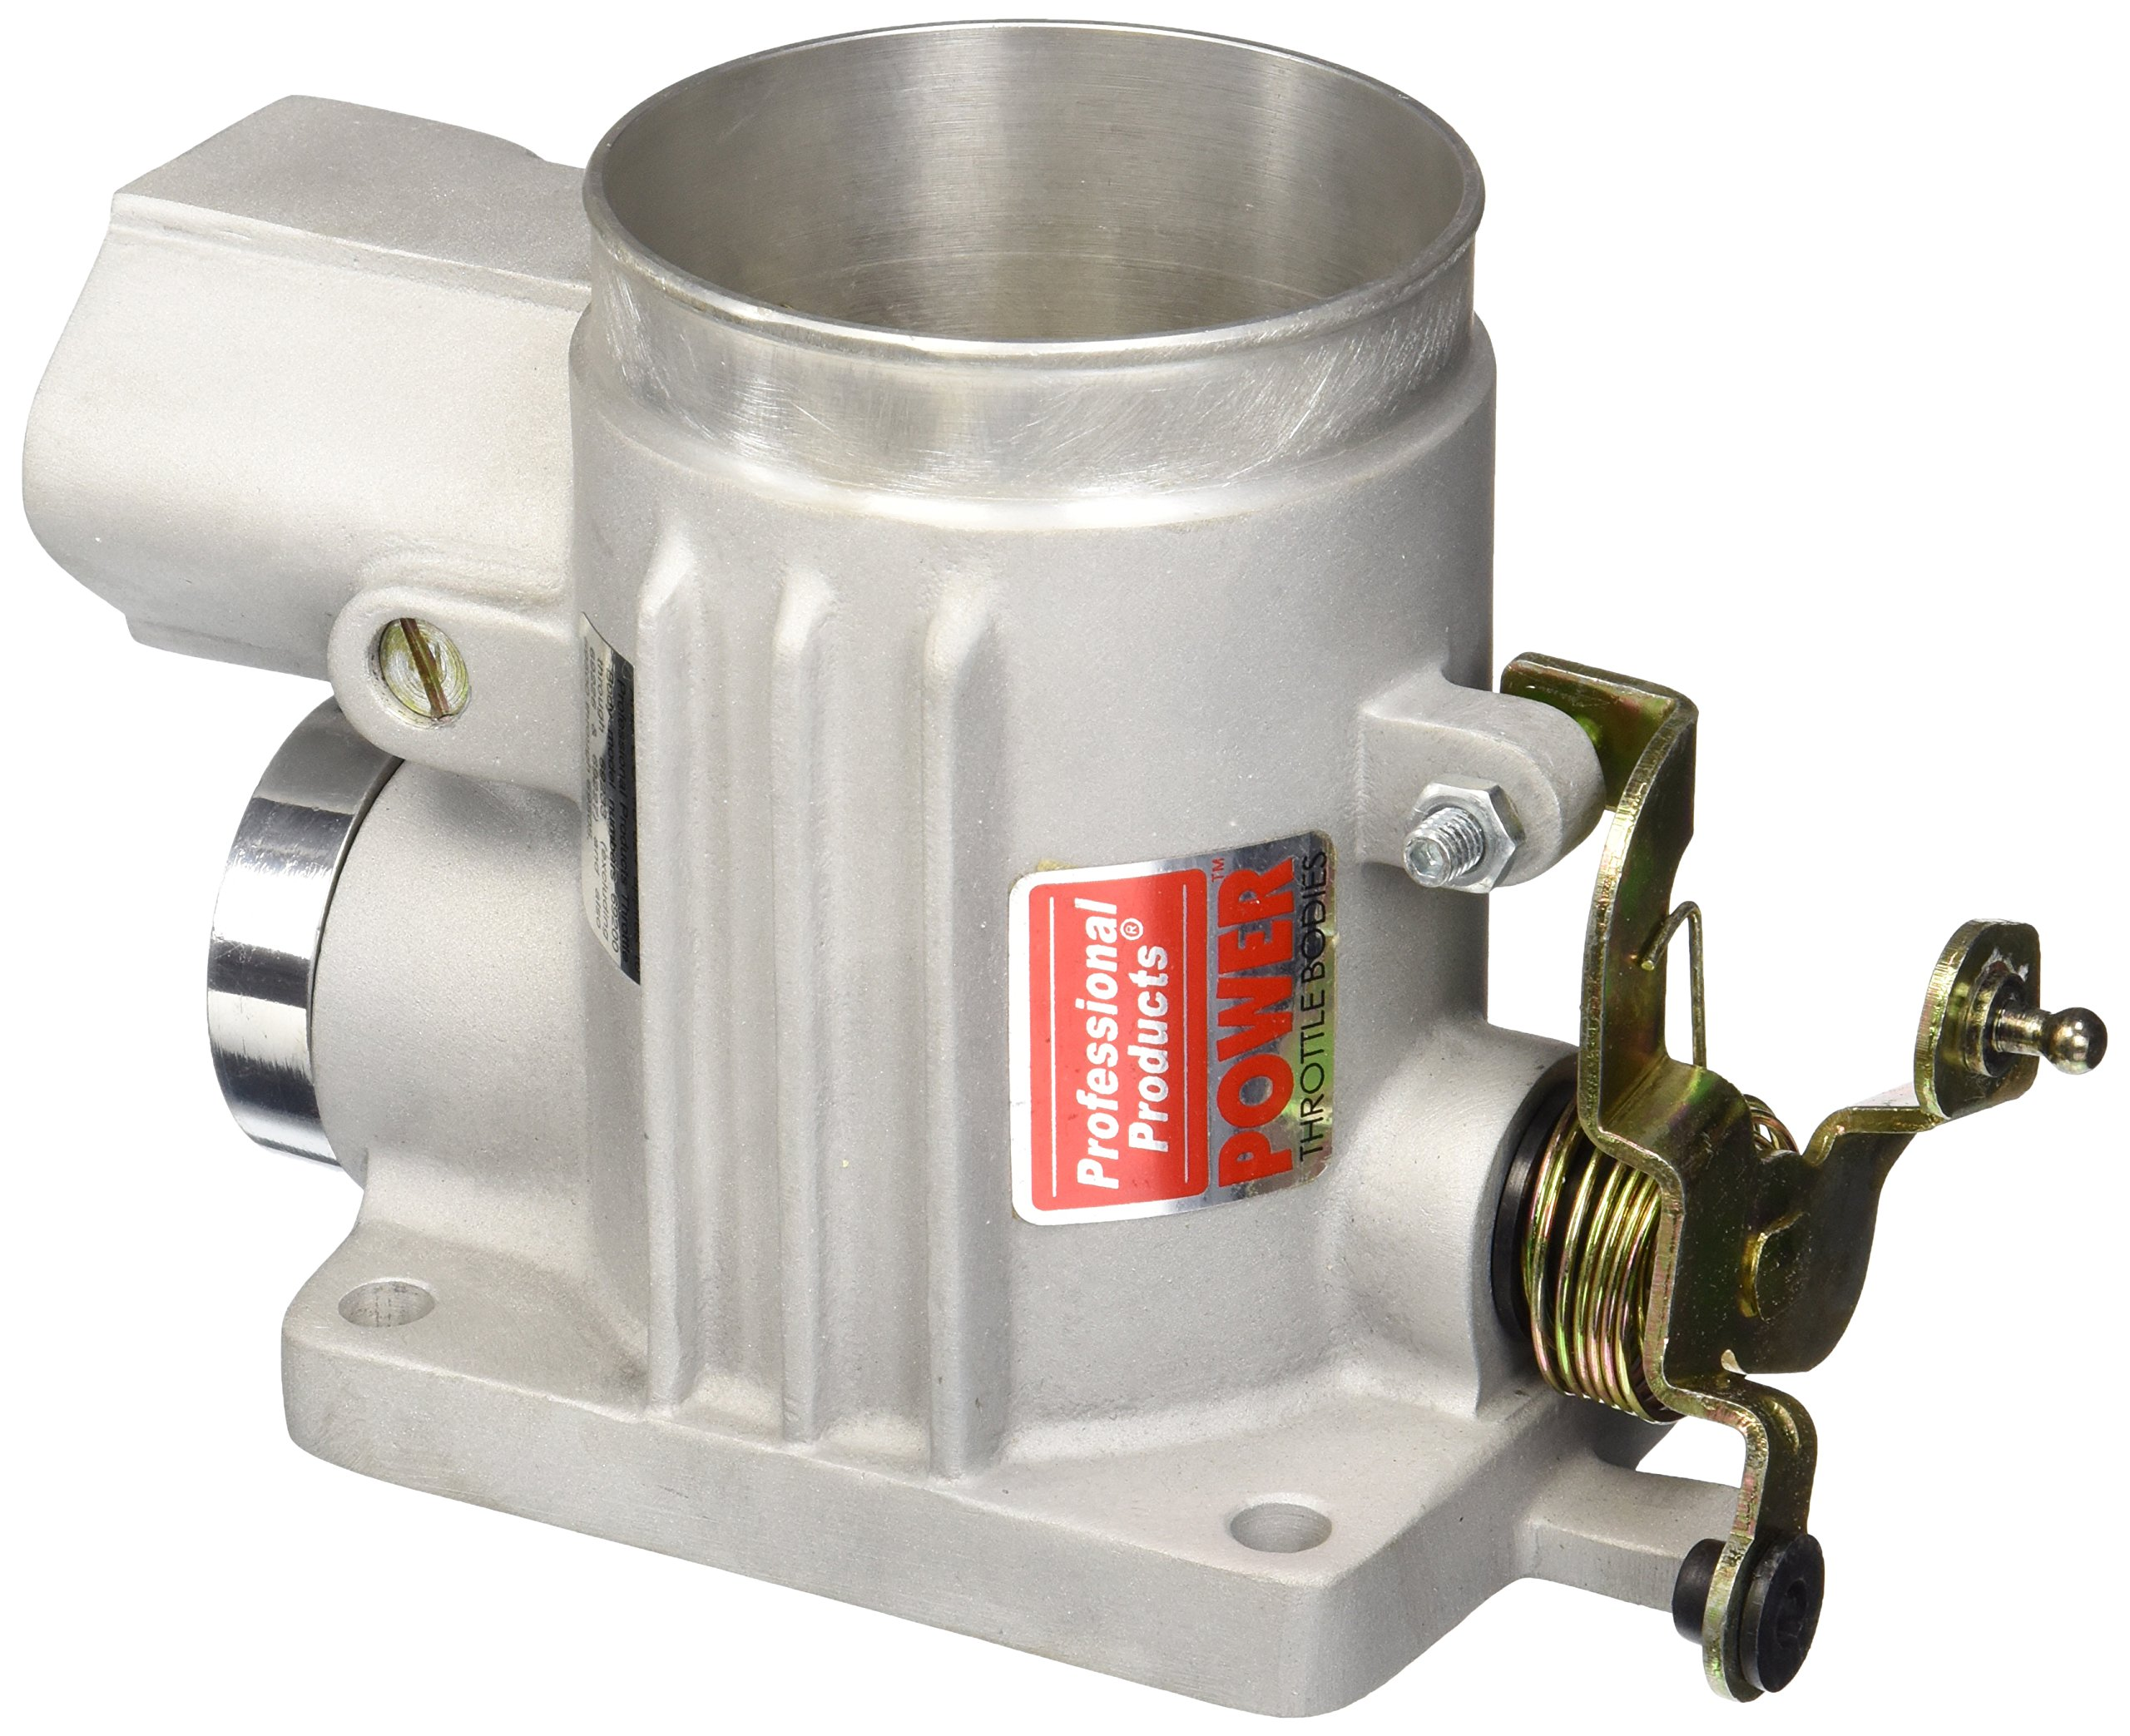 Professional Products (69233) 75mm Satin Throttle Body for T-Bird Super Coupe